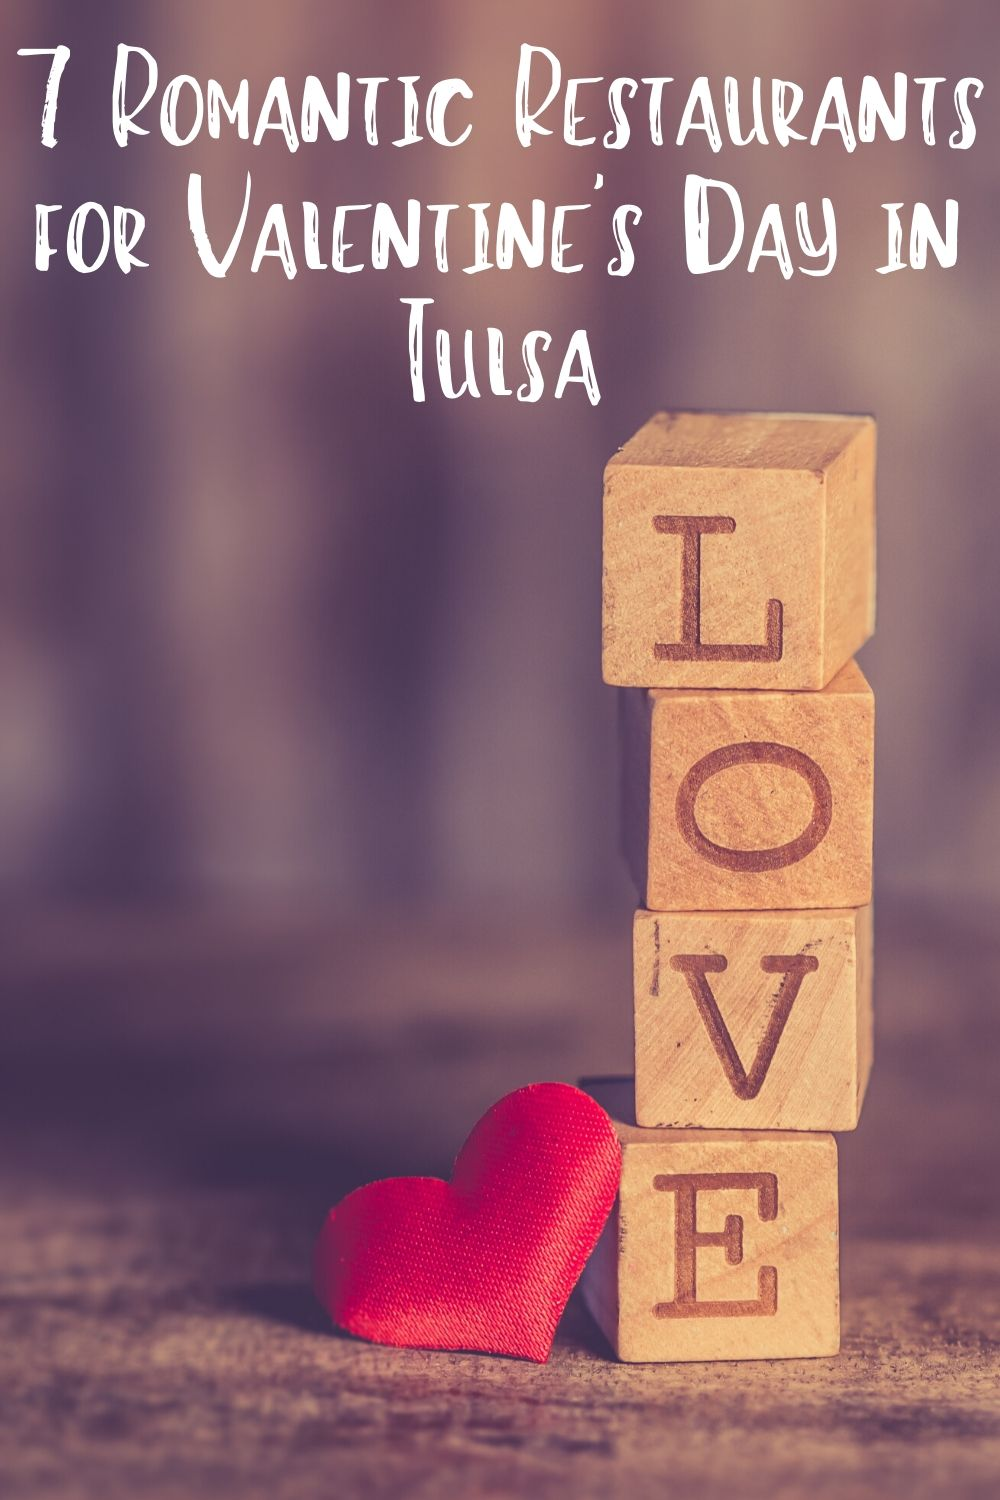 Living in Tulsa is great. There's so much to see and do. When it comes to Tulsa restaurants and Valentine's Day in Tulsa you can't go wrong with these romantic restaurants. Your date will love these awesome Tulsa restaurants.